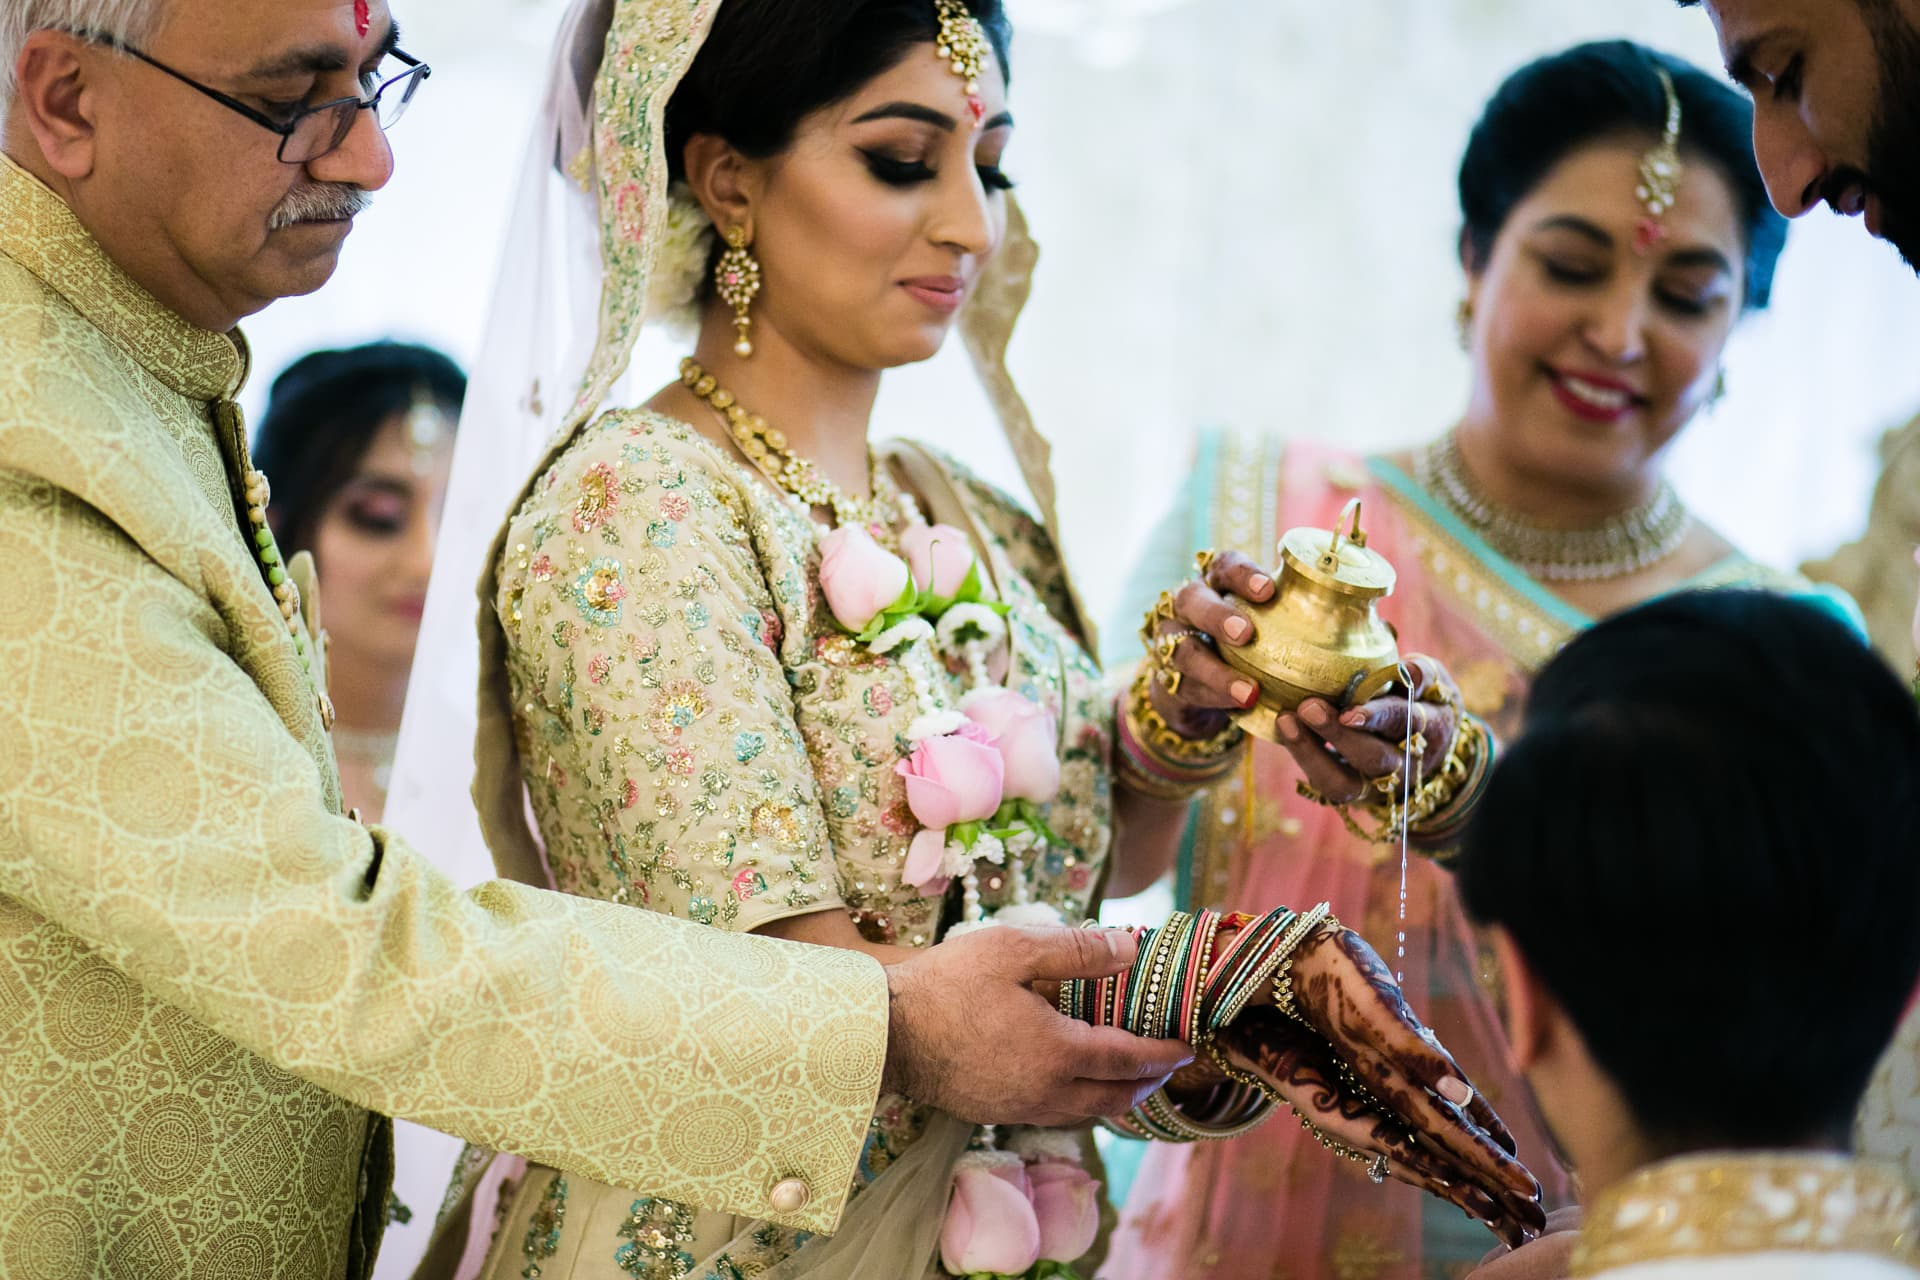 Bride's parents giving daughter away in marriage